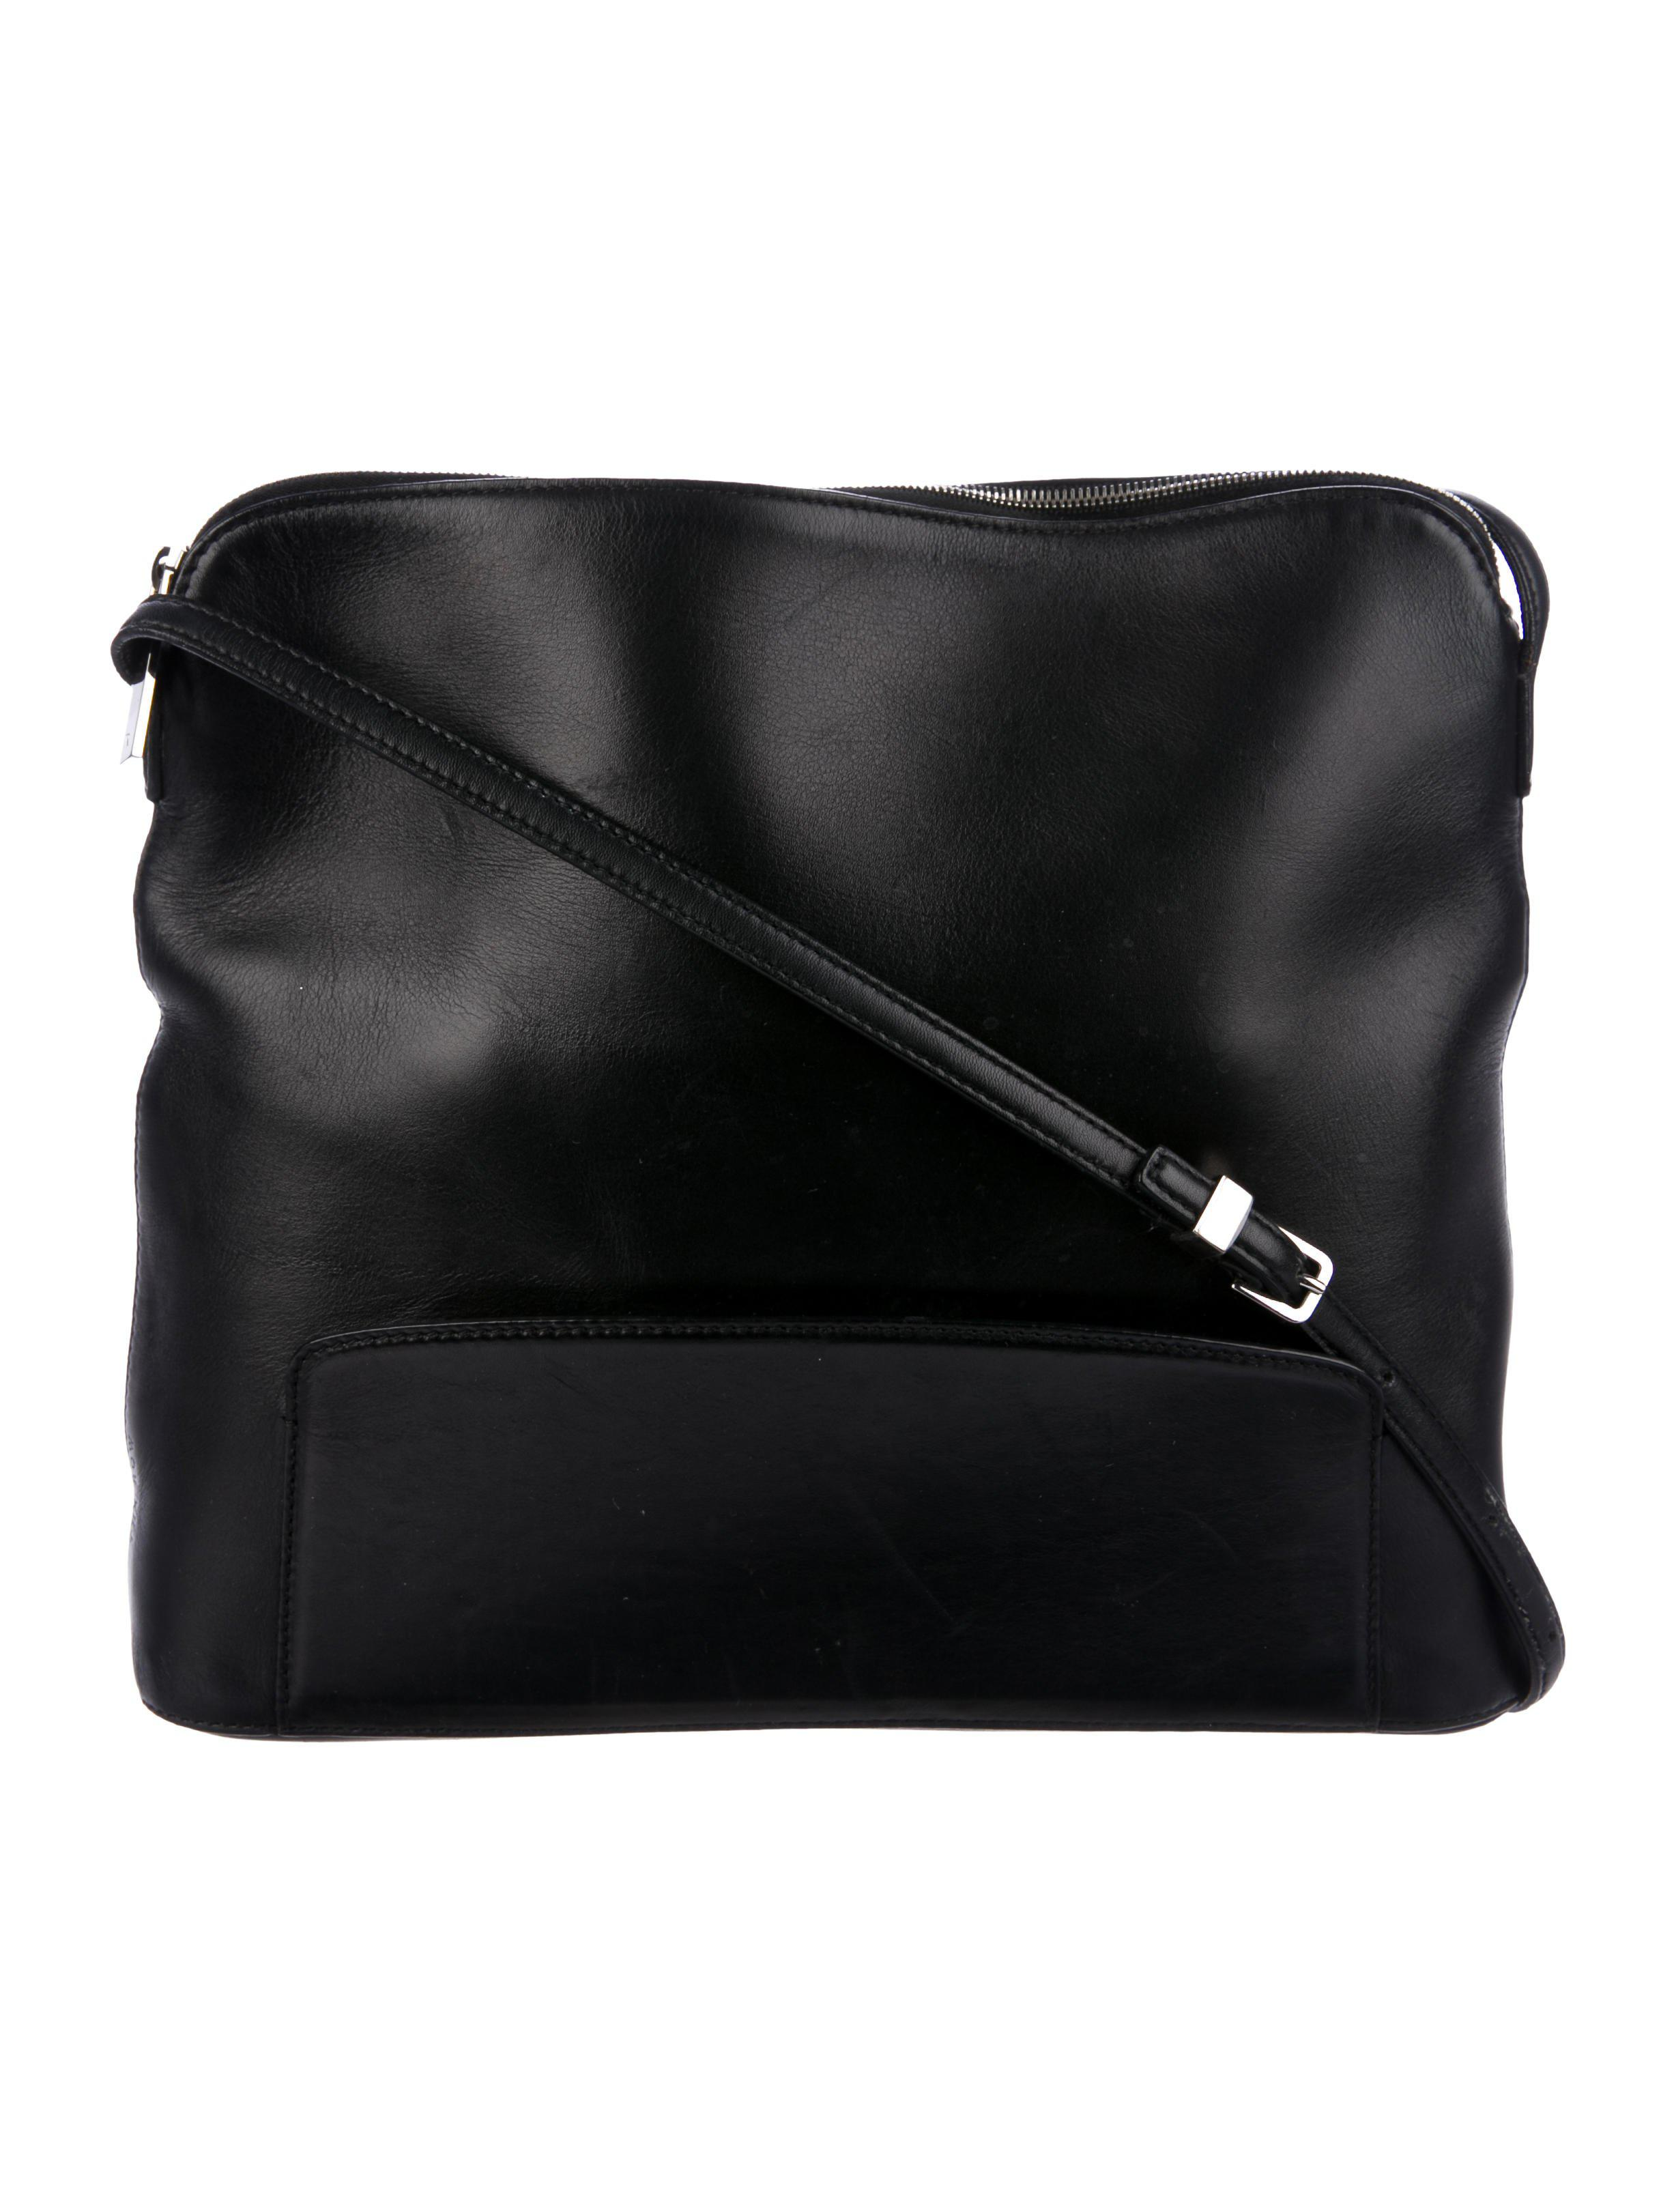 The Row Python Crossbody Bag Buy Cheap 2018 Newest Nicekicks Factory Outlet 100% Authentic For Sale 50e7y6wR